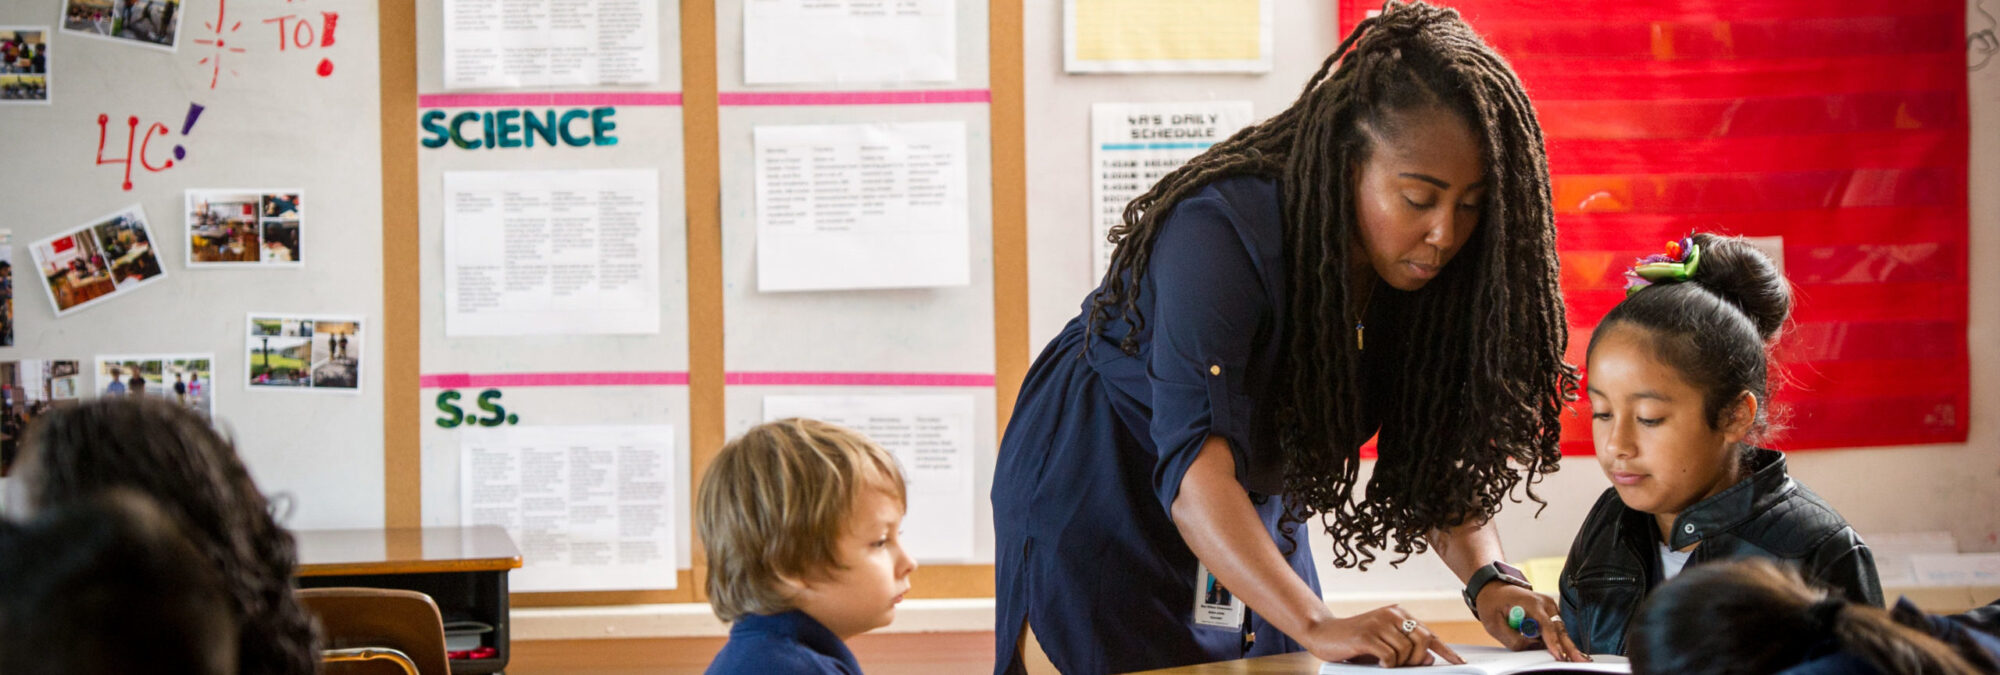 Female elementary school teacher interacting with a young boy and girl in classroom.